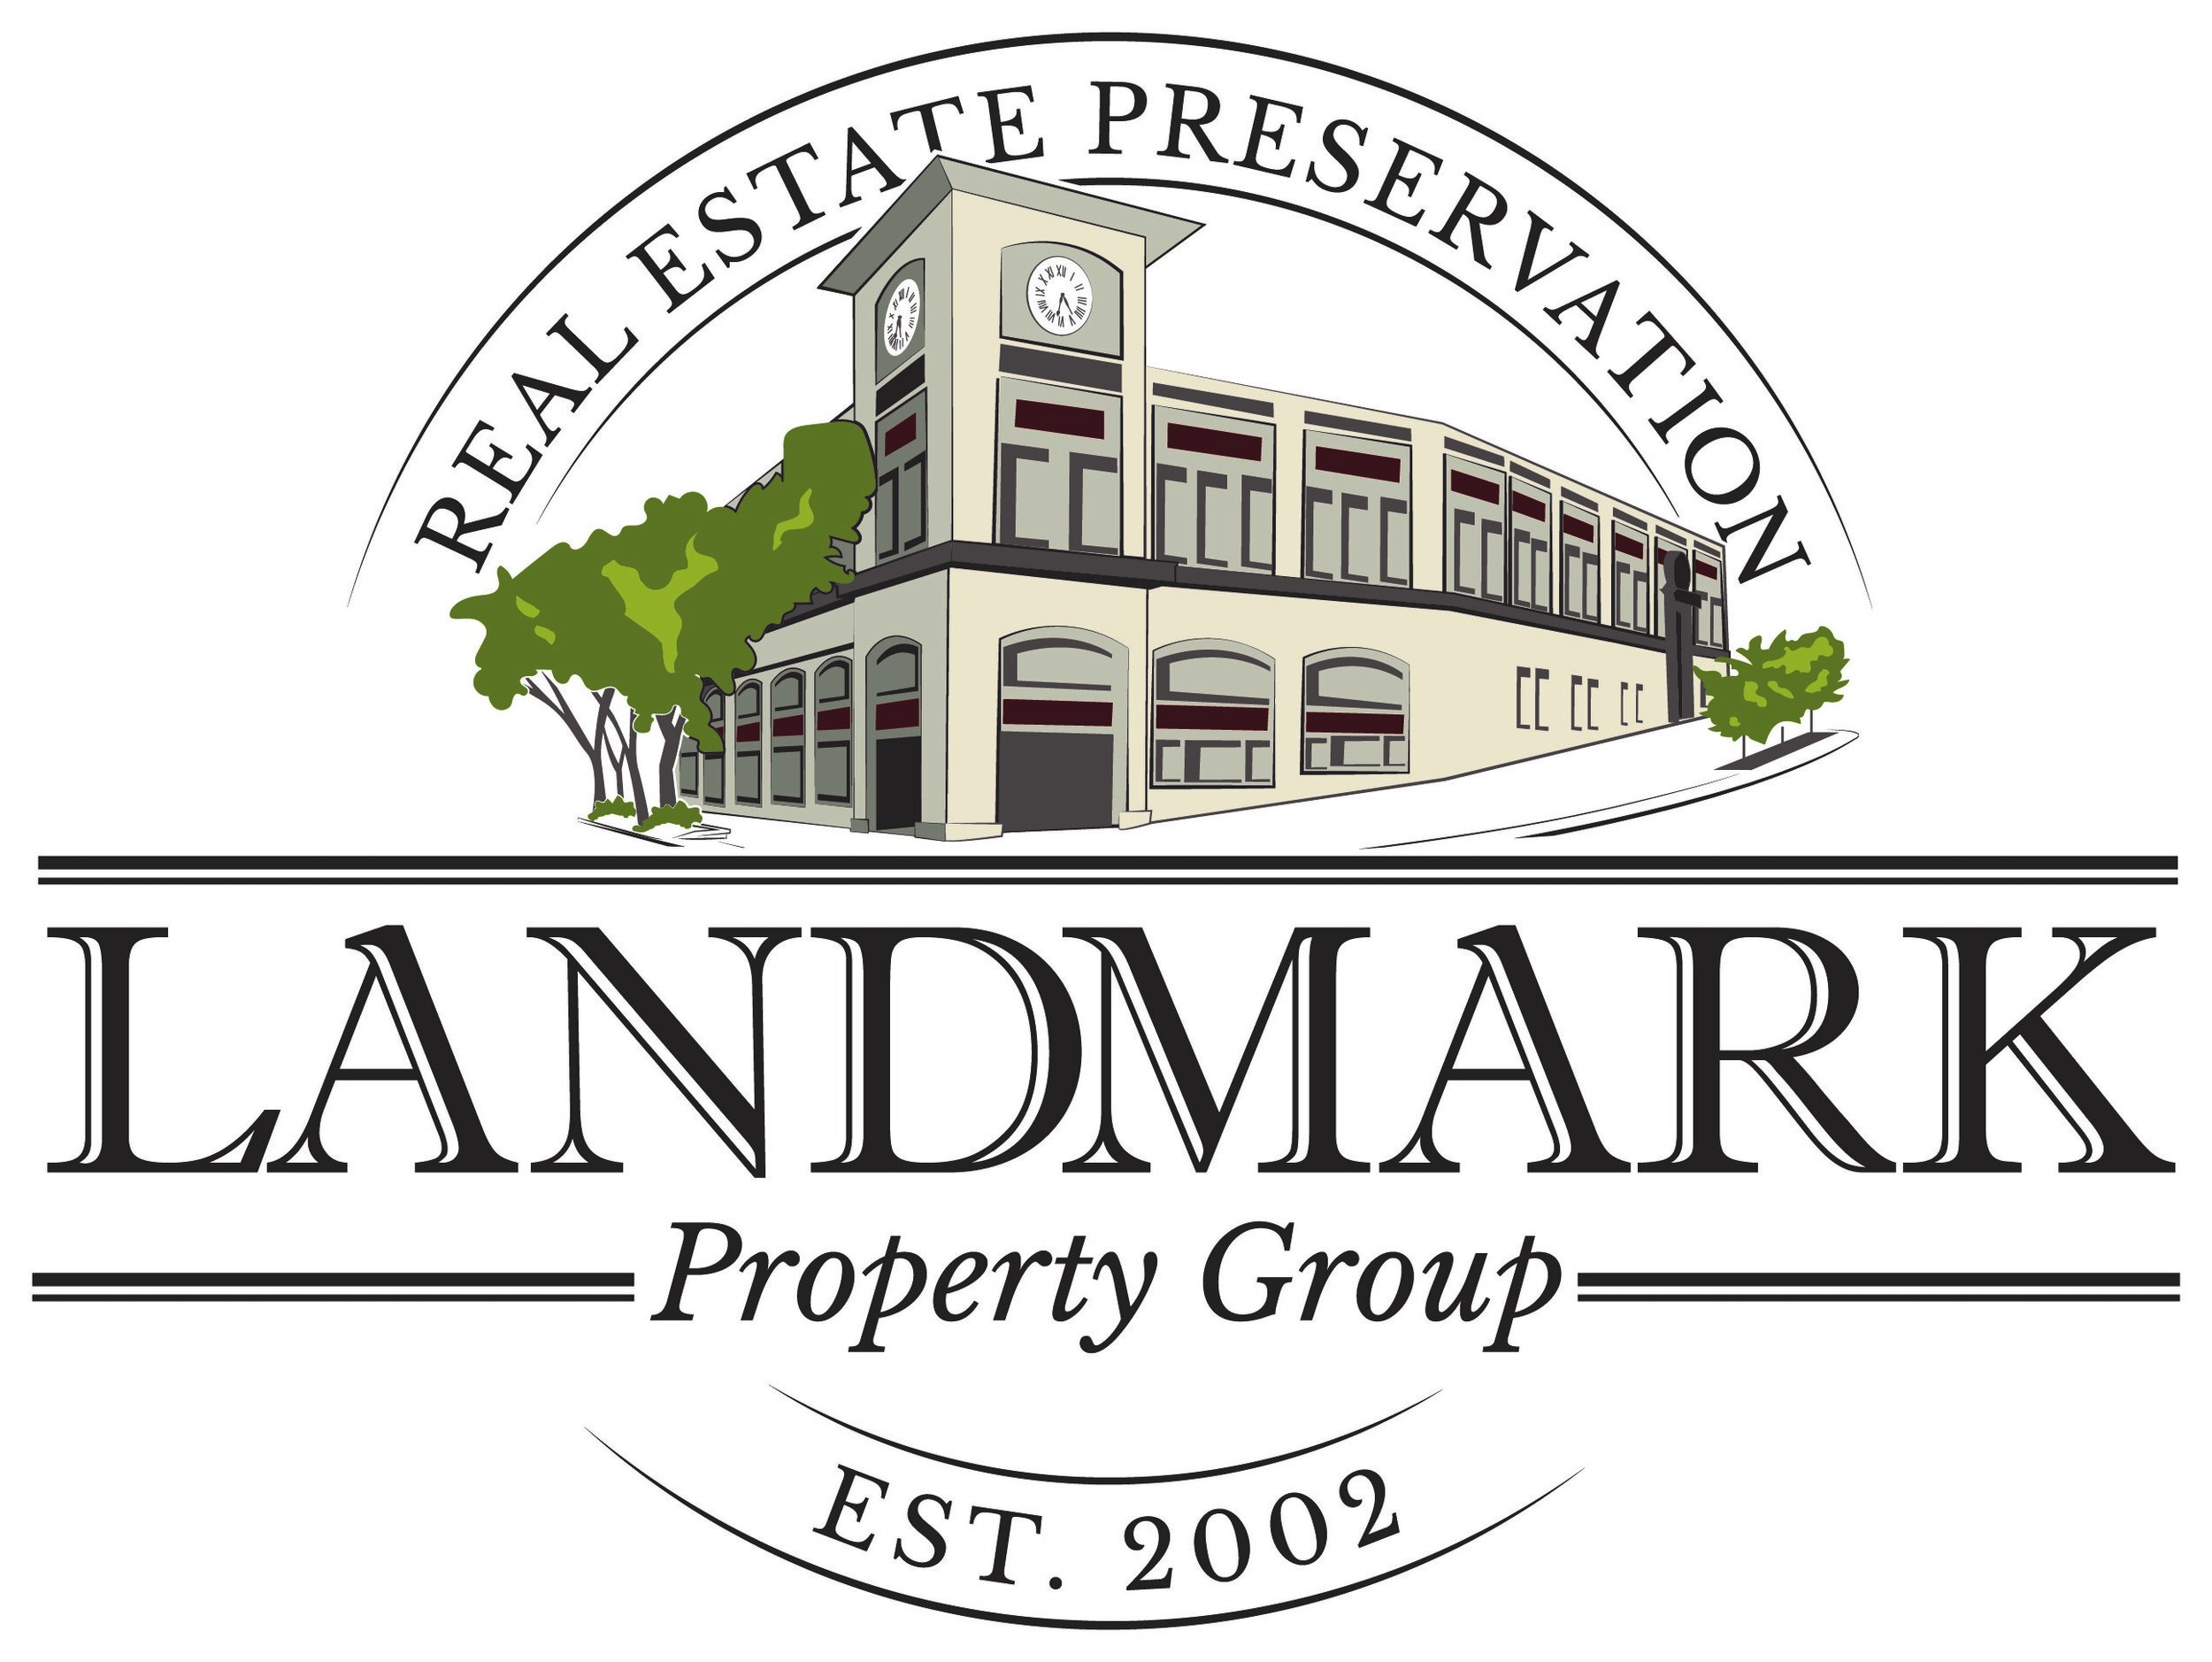 Lanmakr Property Group.jpg